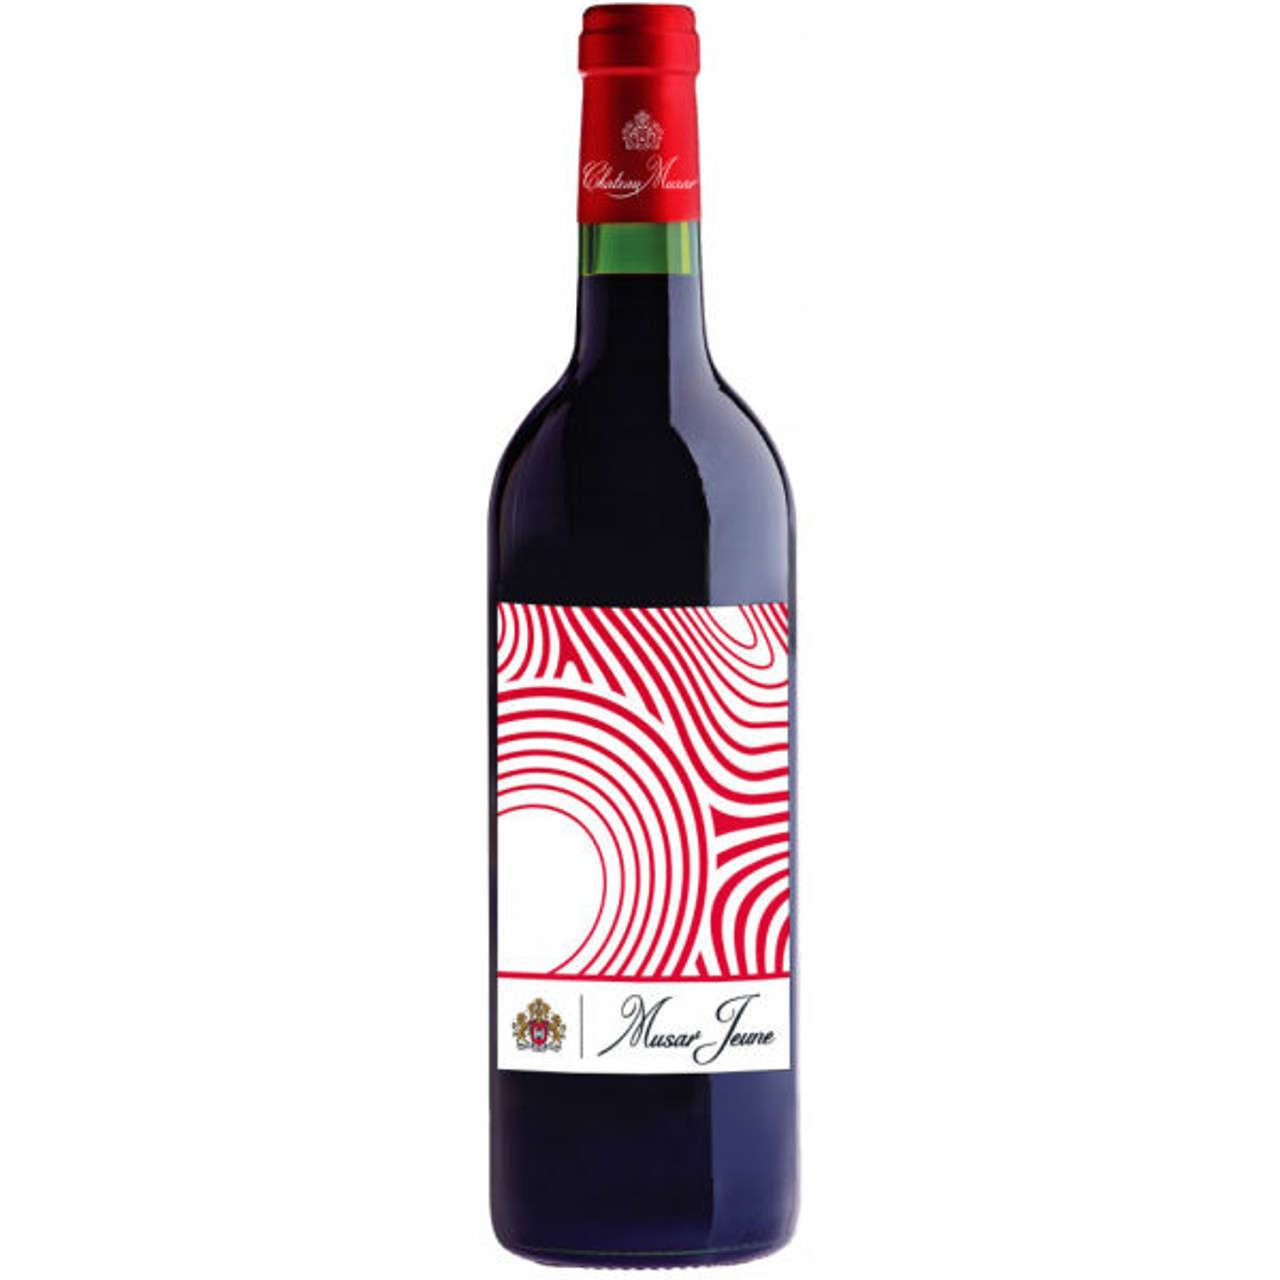 Chateau Musar Jeune Rouge